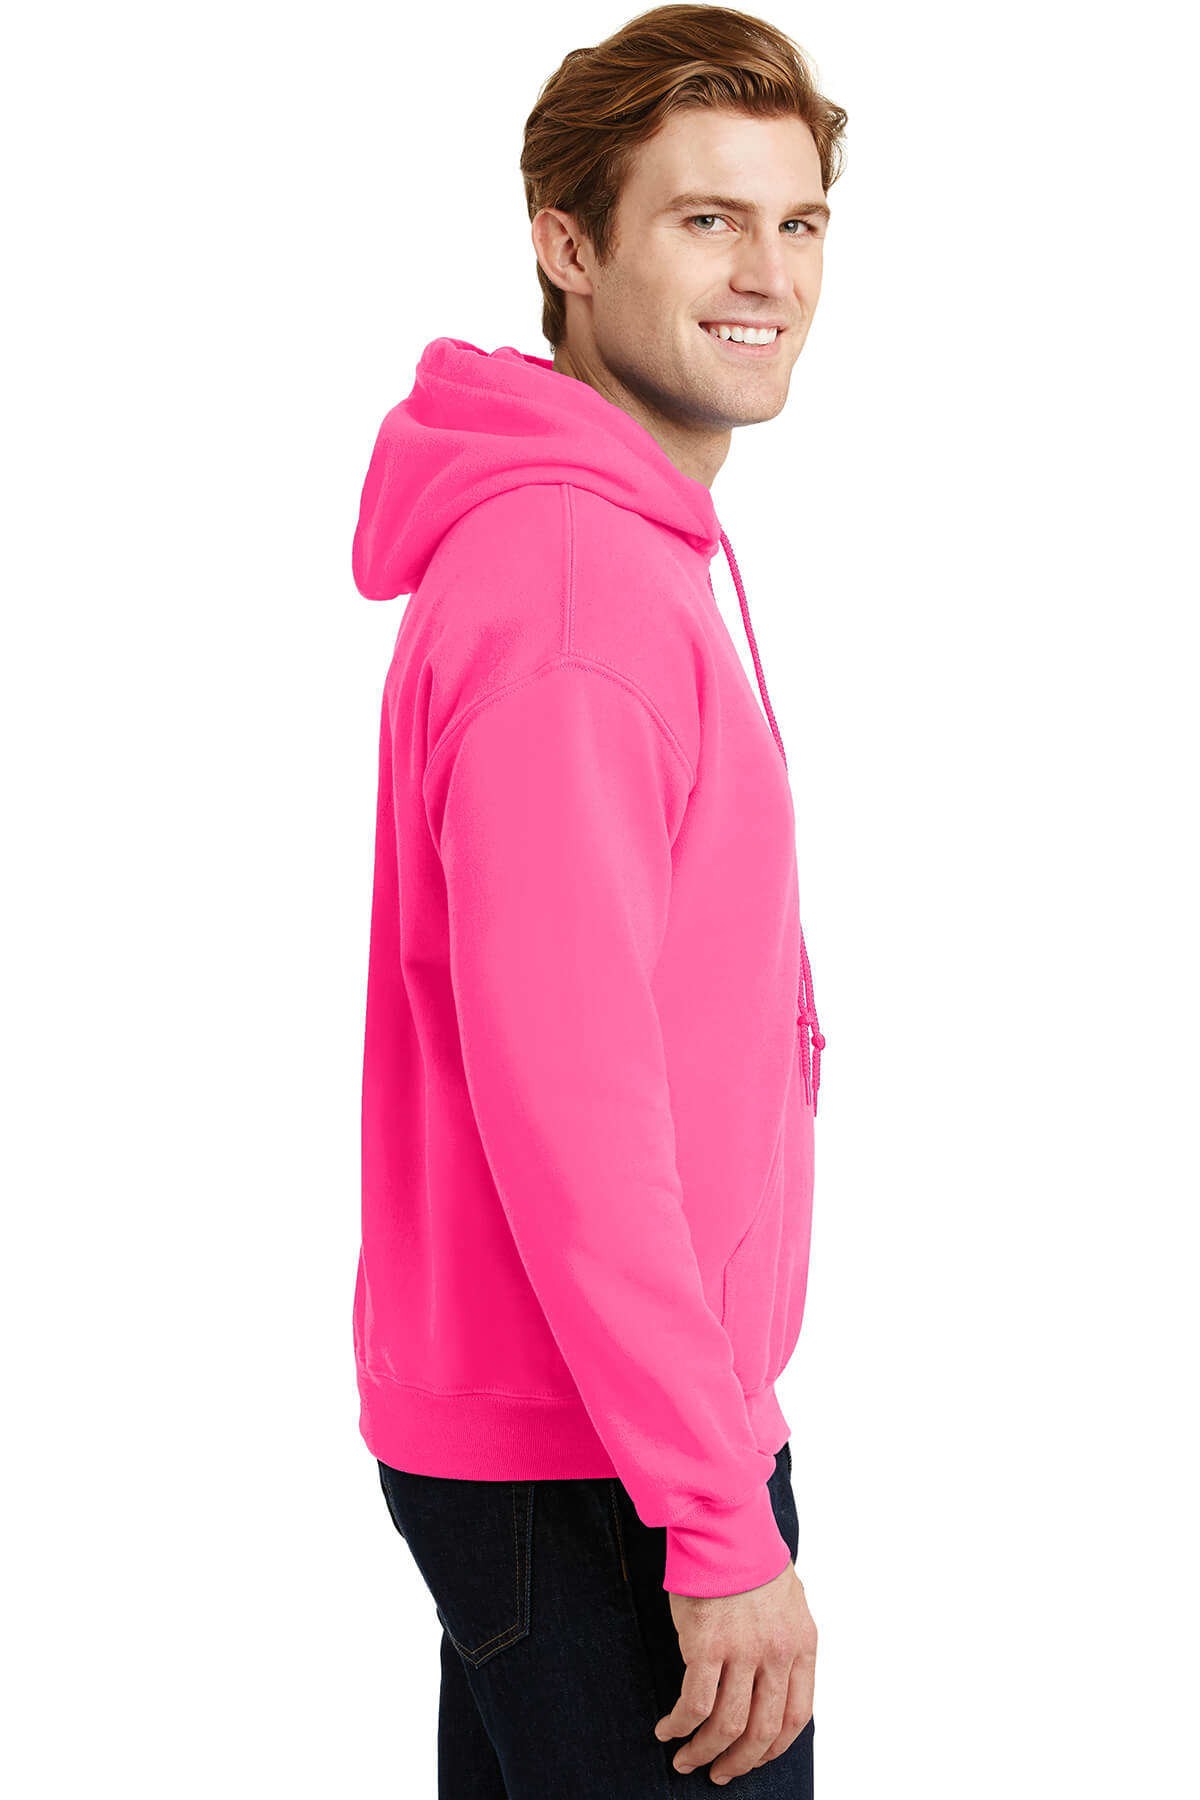 18500-safety-pink-3